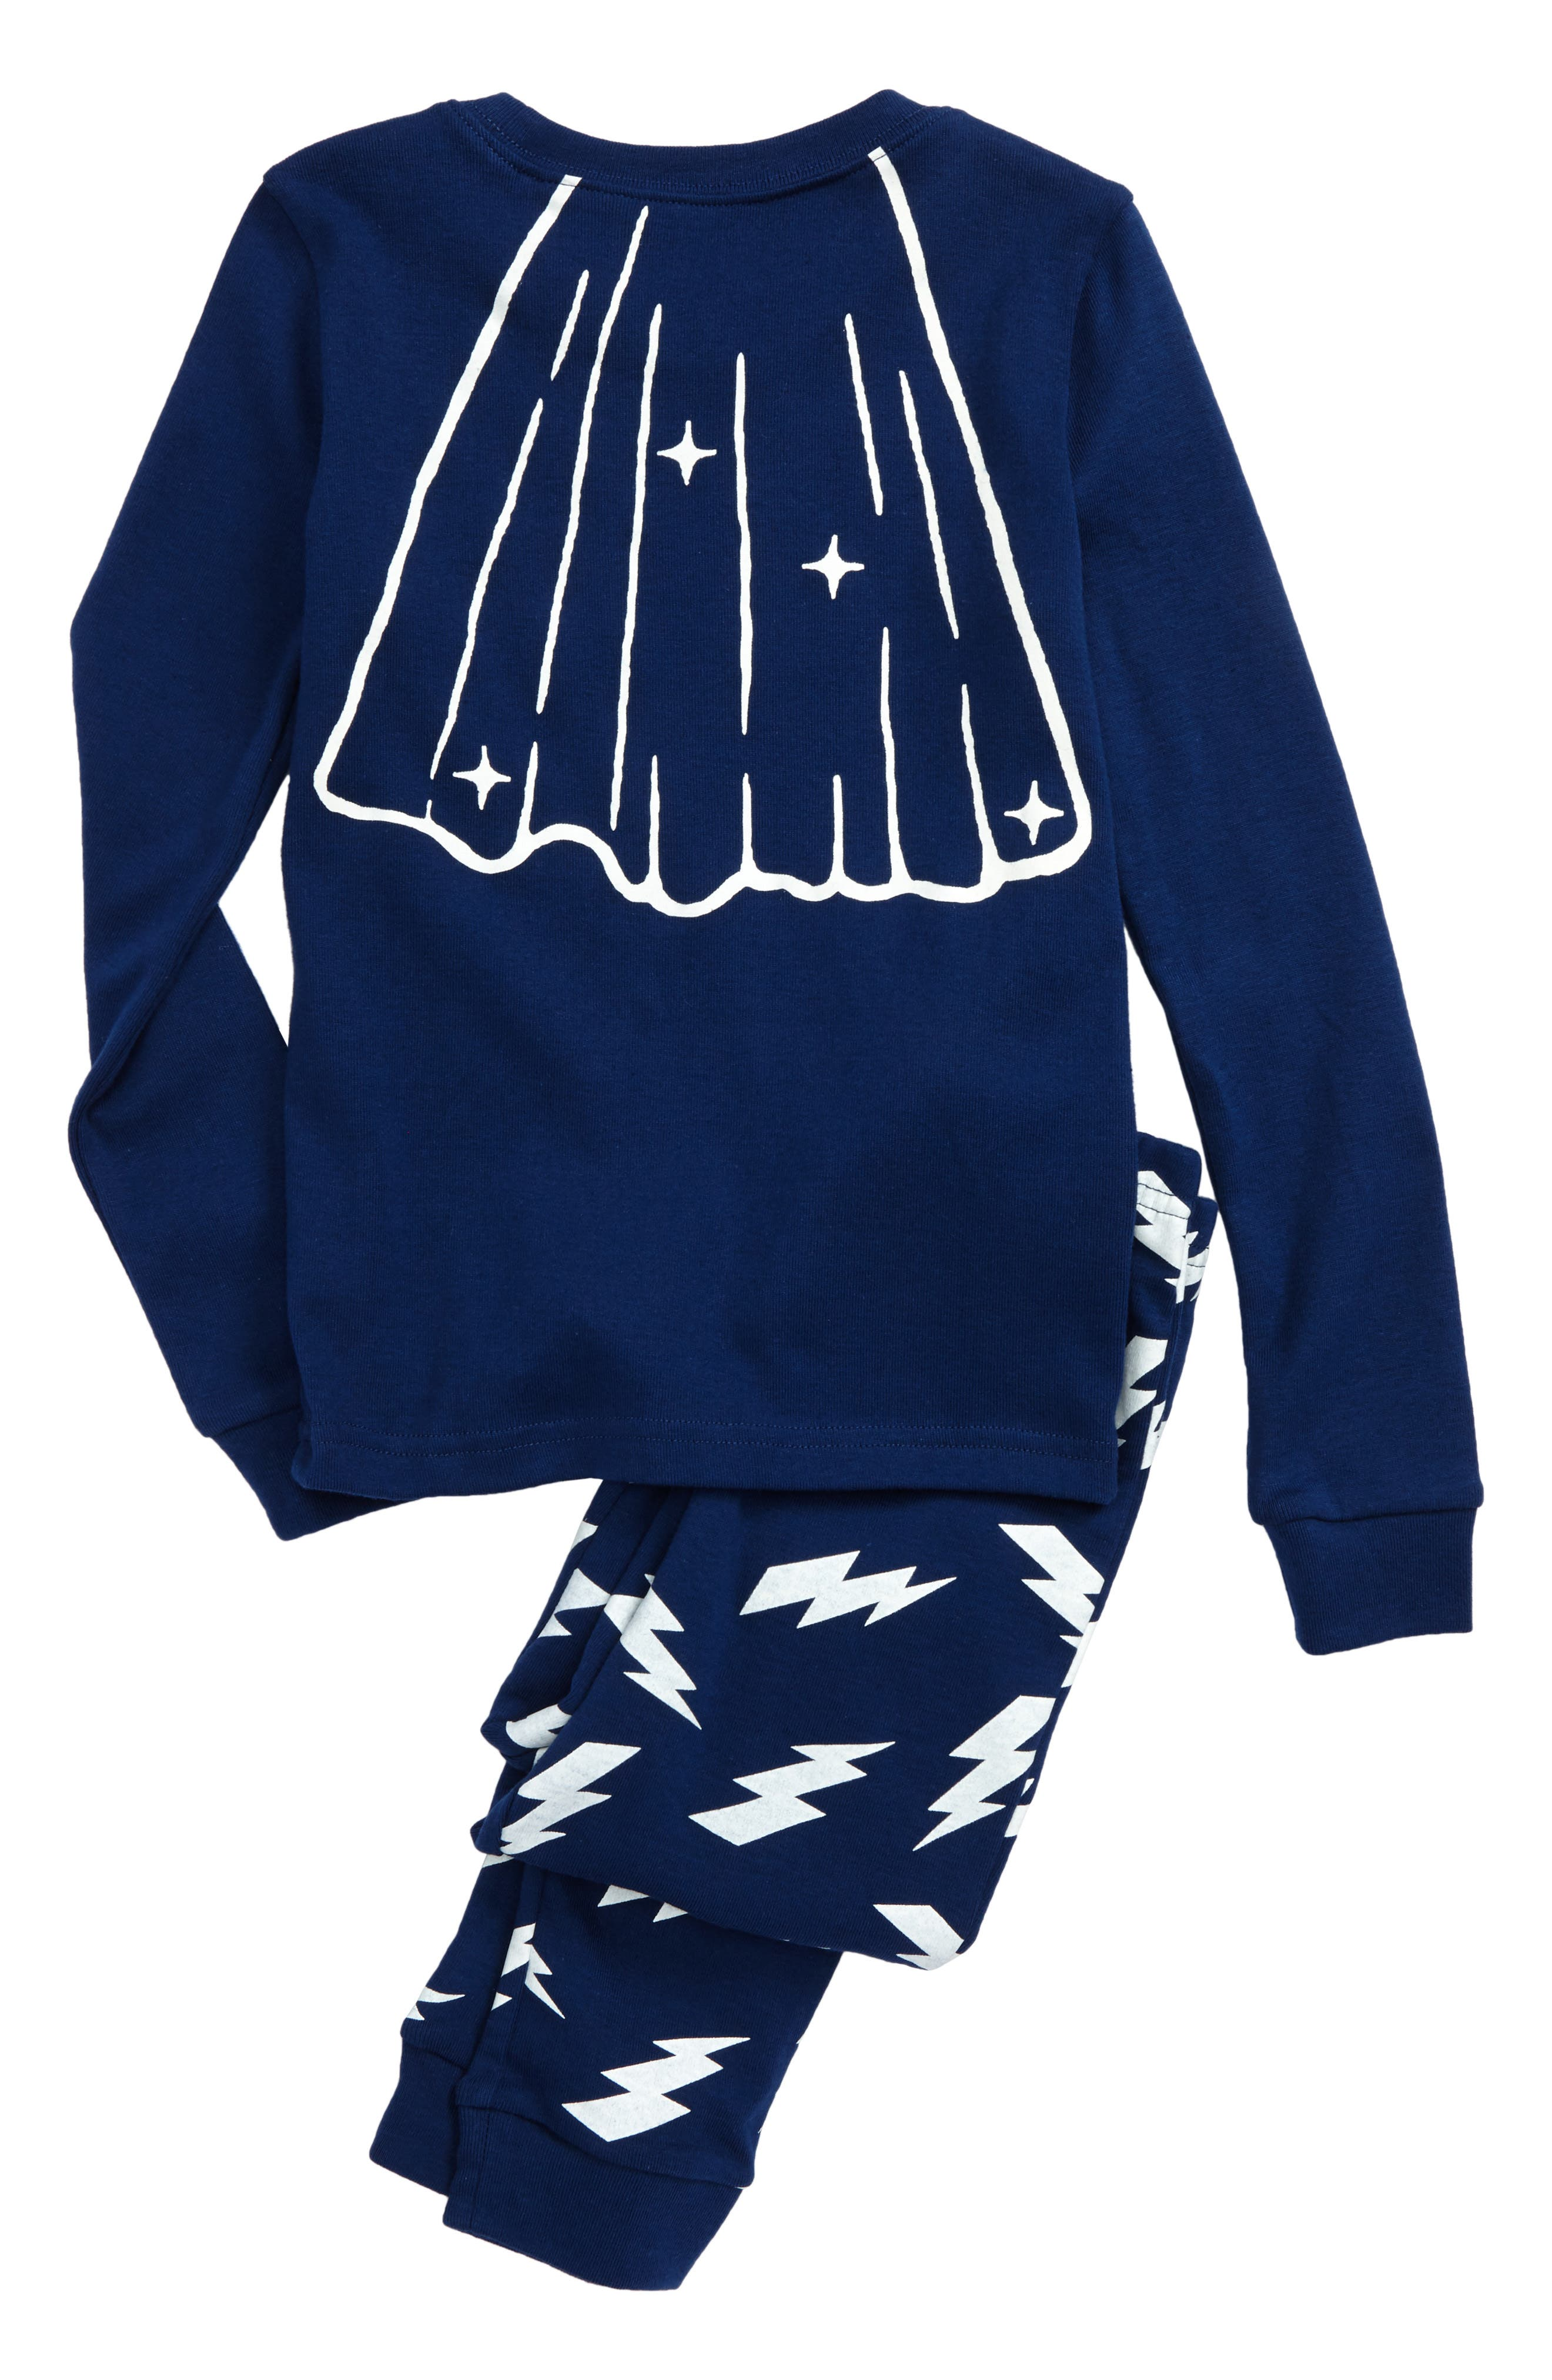 Super Kid Glow in the Dark Fitted Two-Piece Pajamas,                             Alternate thumbnail 2, color,                             Blue Estate Super Kid